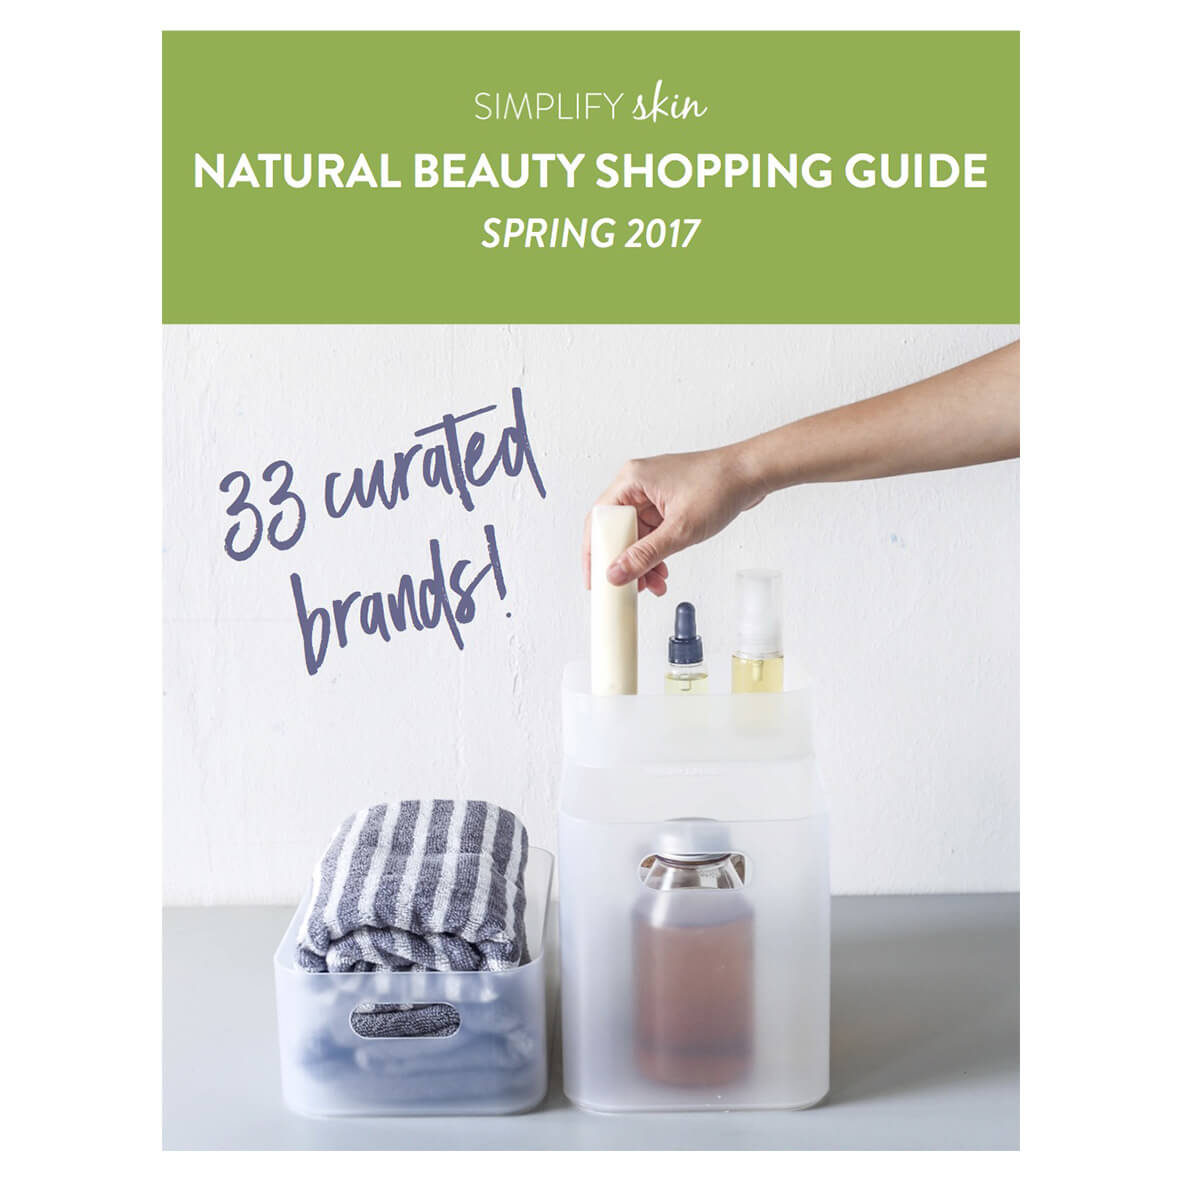 Spring 2017 Natural Beauty Shopping Guide | littlegreendot.com